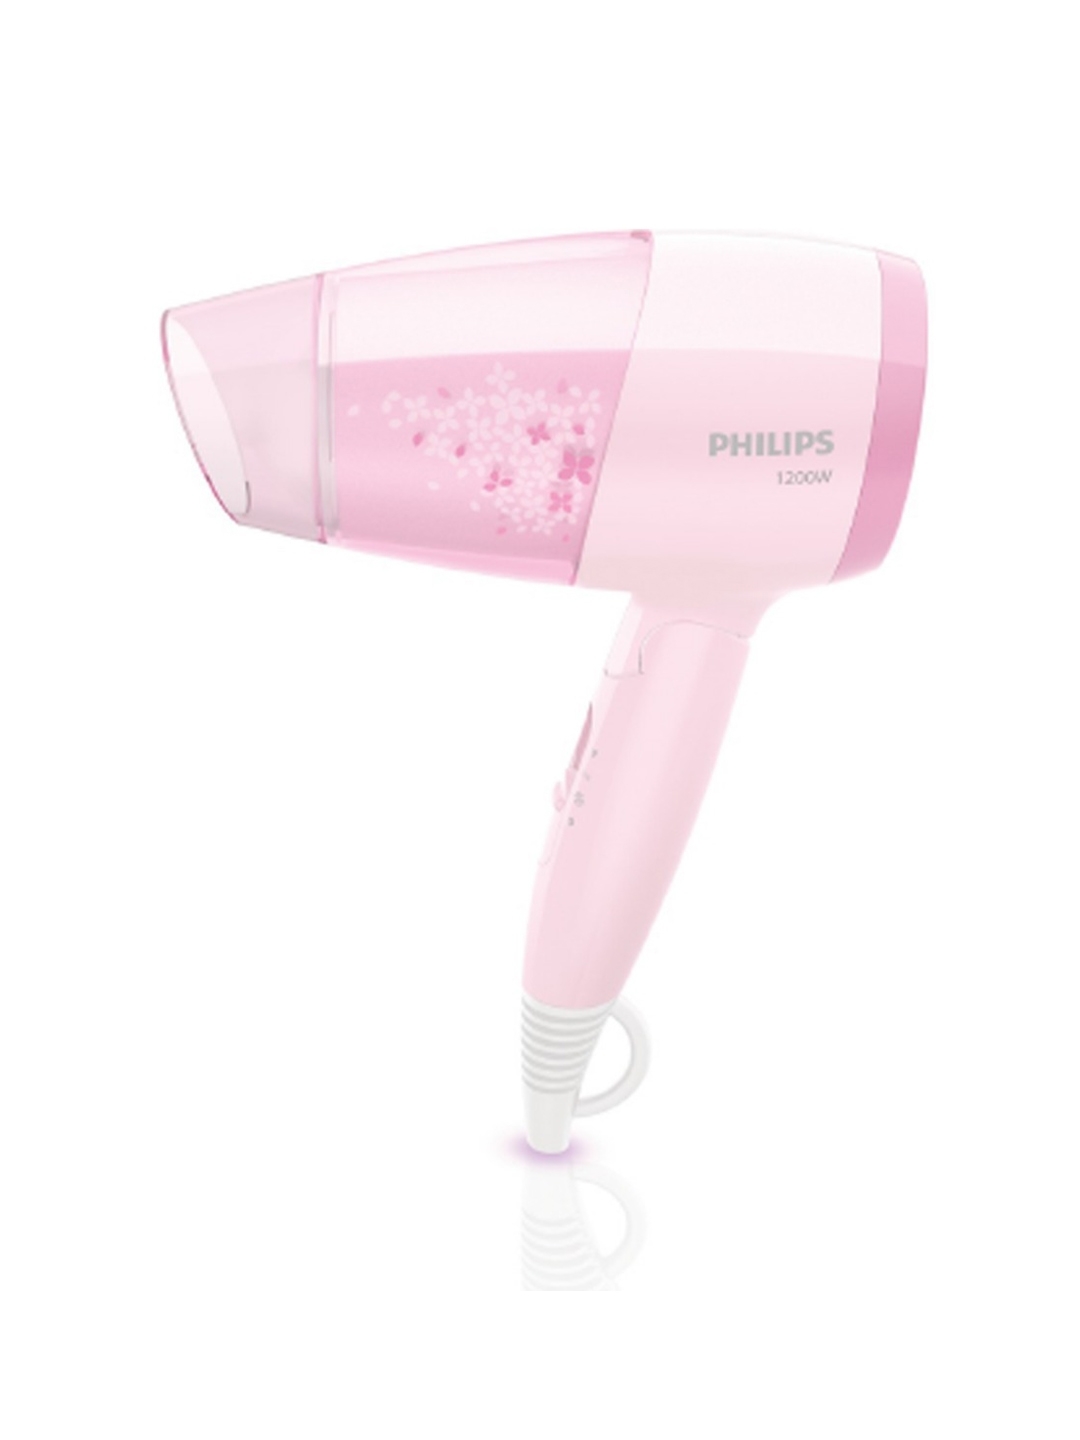 Philips BHC017/00 ThermoProtect 1200 W Hair Dryer  Pink